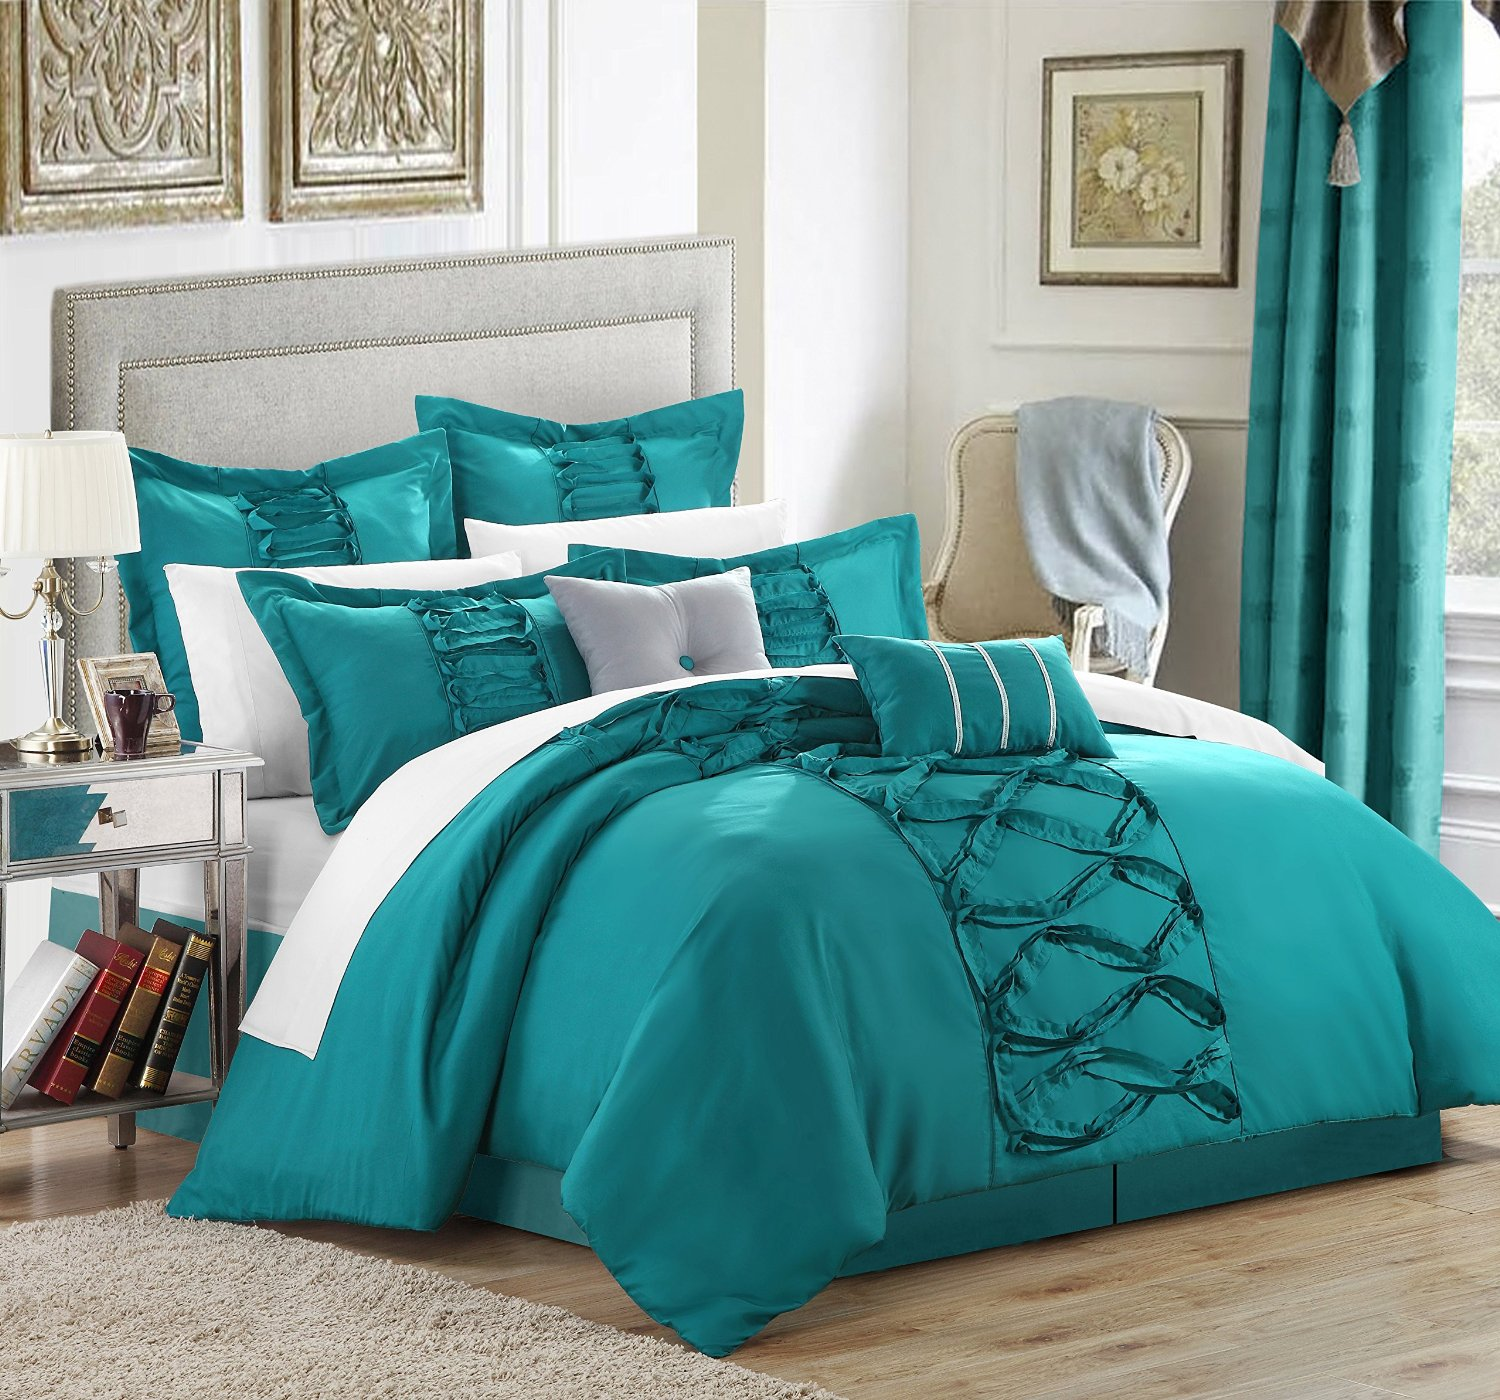 Teal bedroom decor